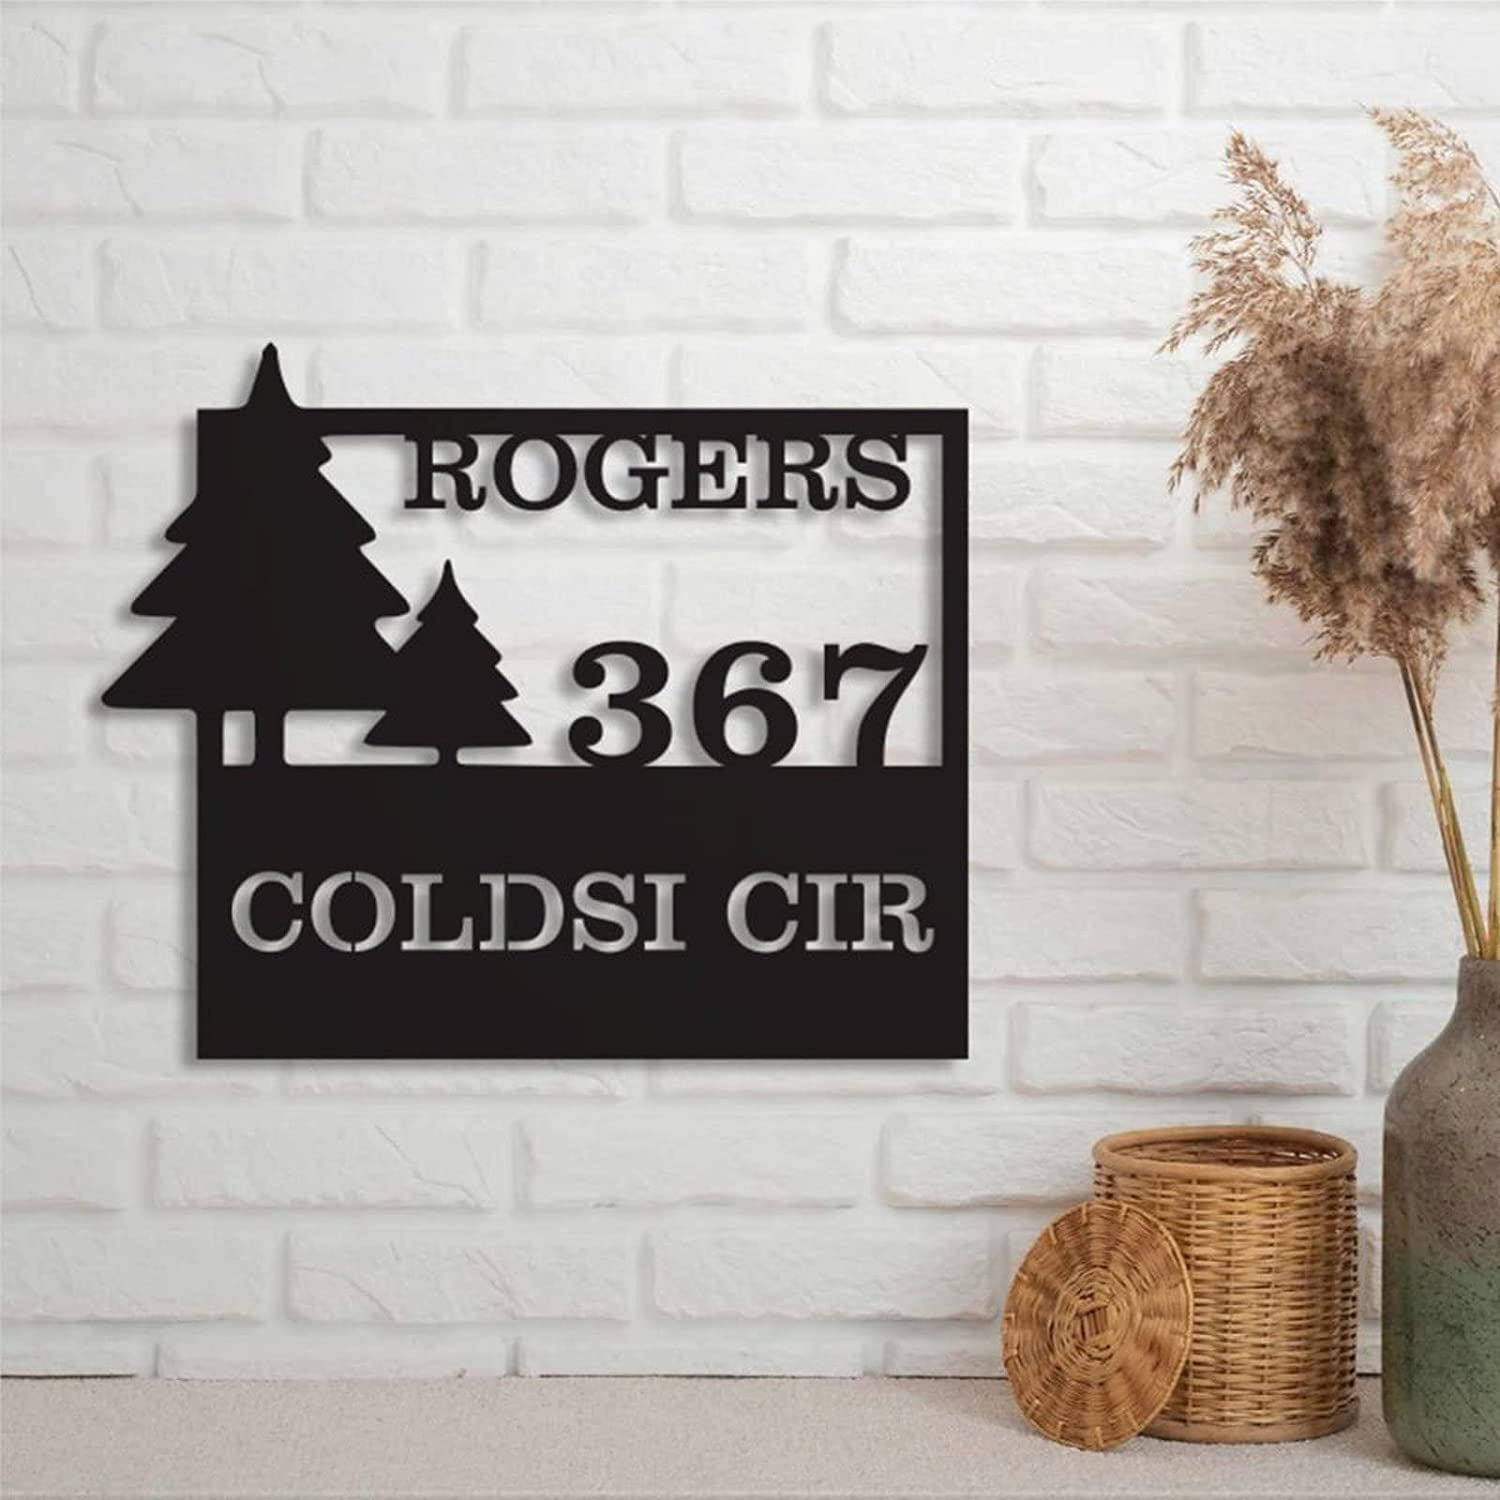 Personalized Wall Decor Monogram Wilderness Limited price Establi Sign Address A surprise price is realized